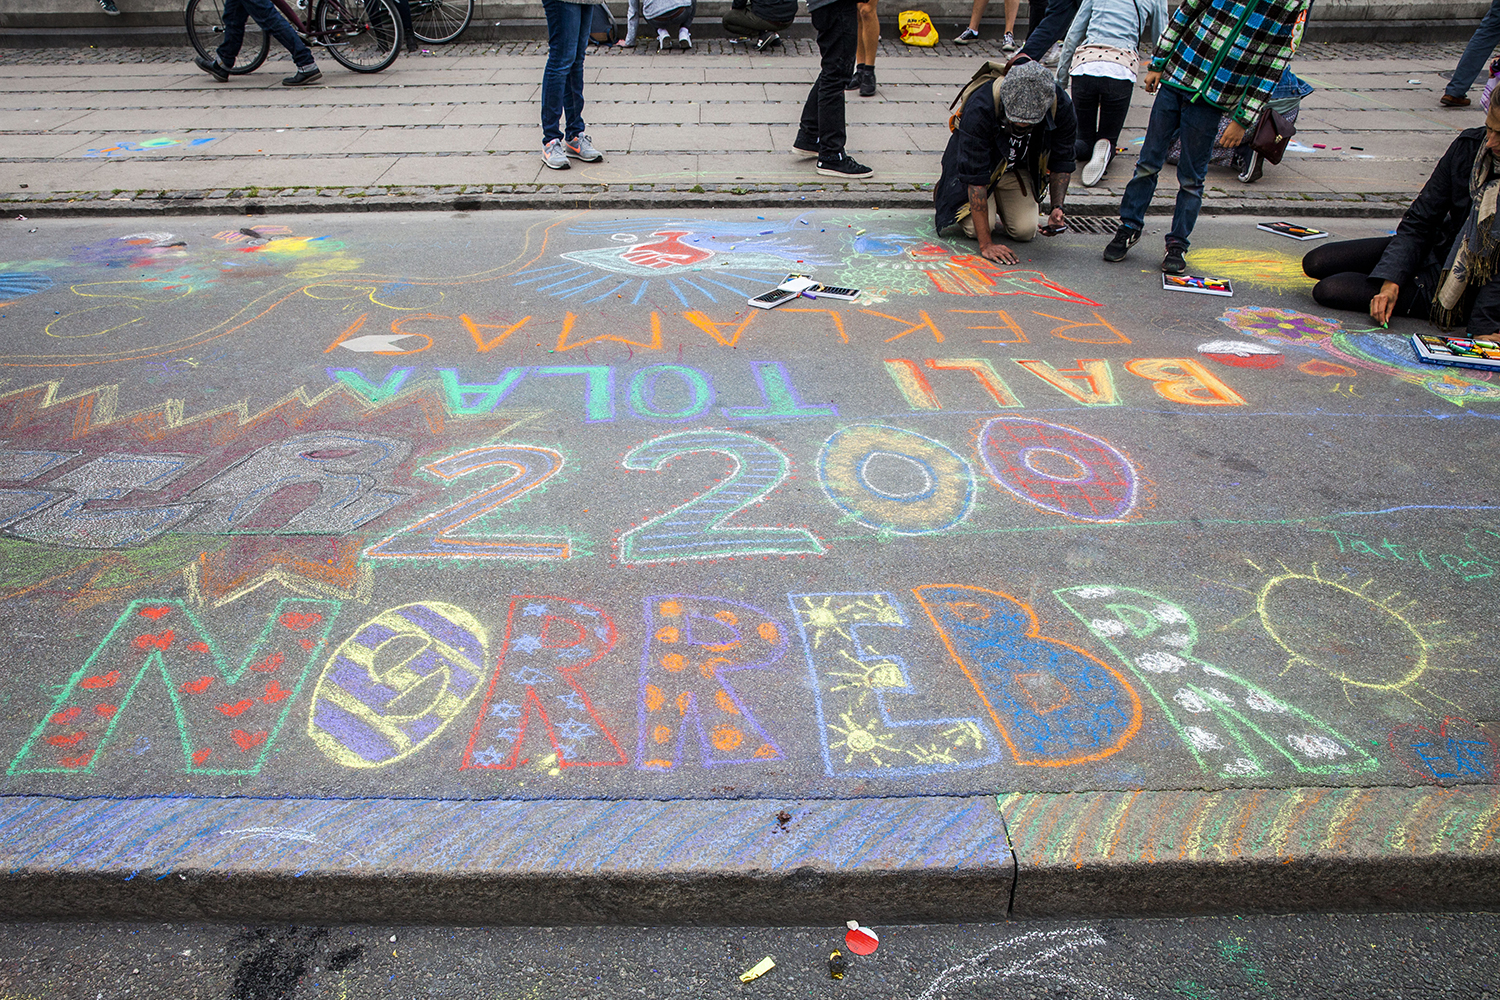 chalk_painting_day_18-09-16_helenalundquist_10